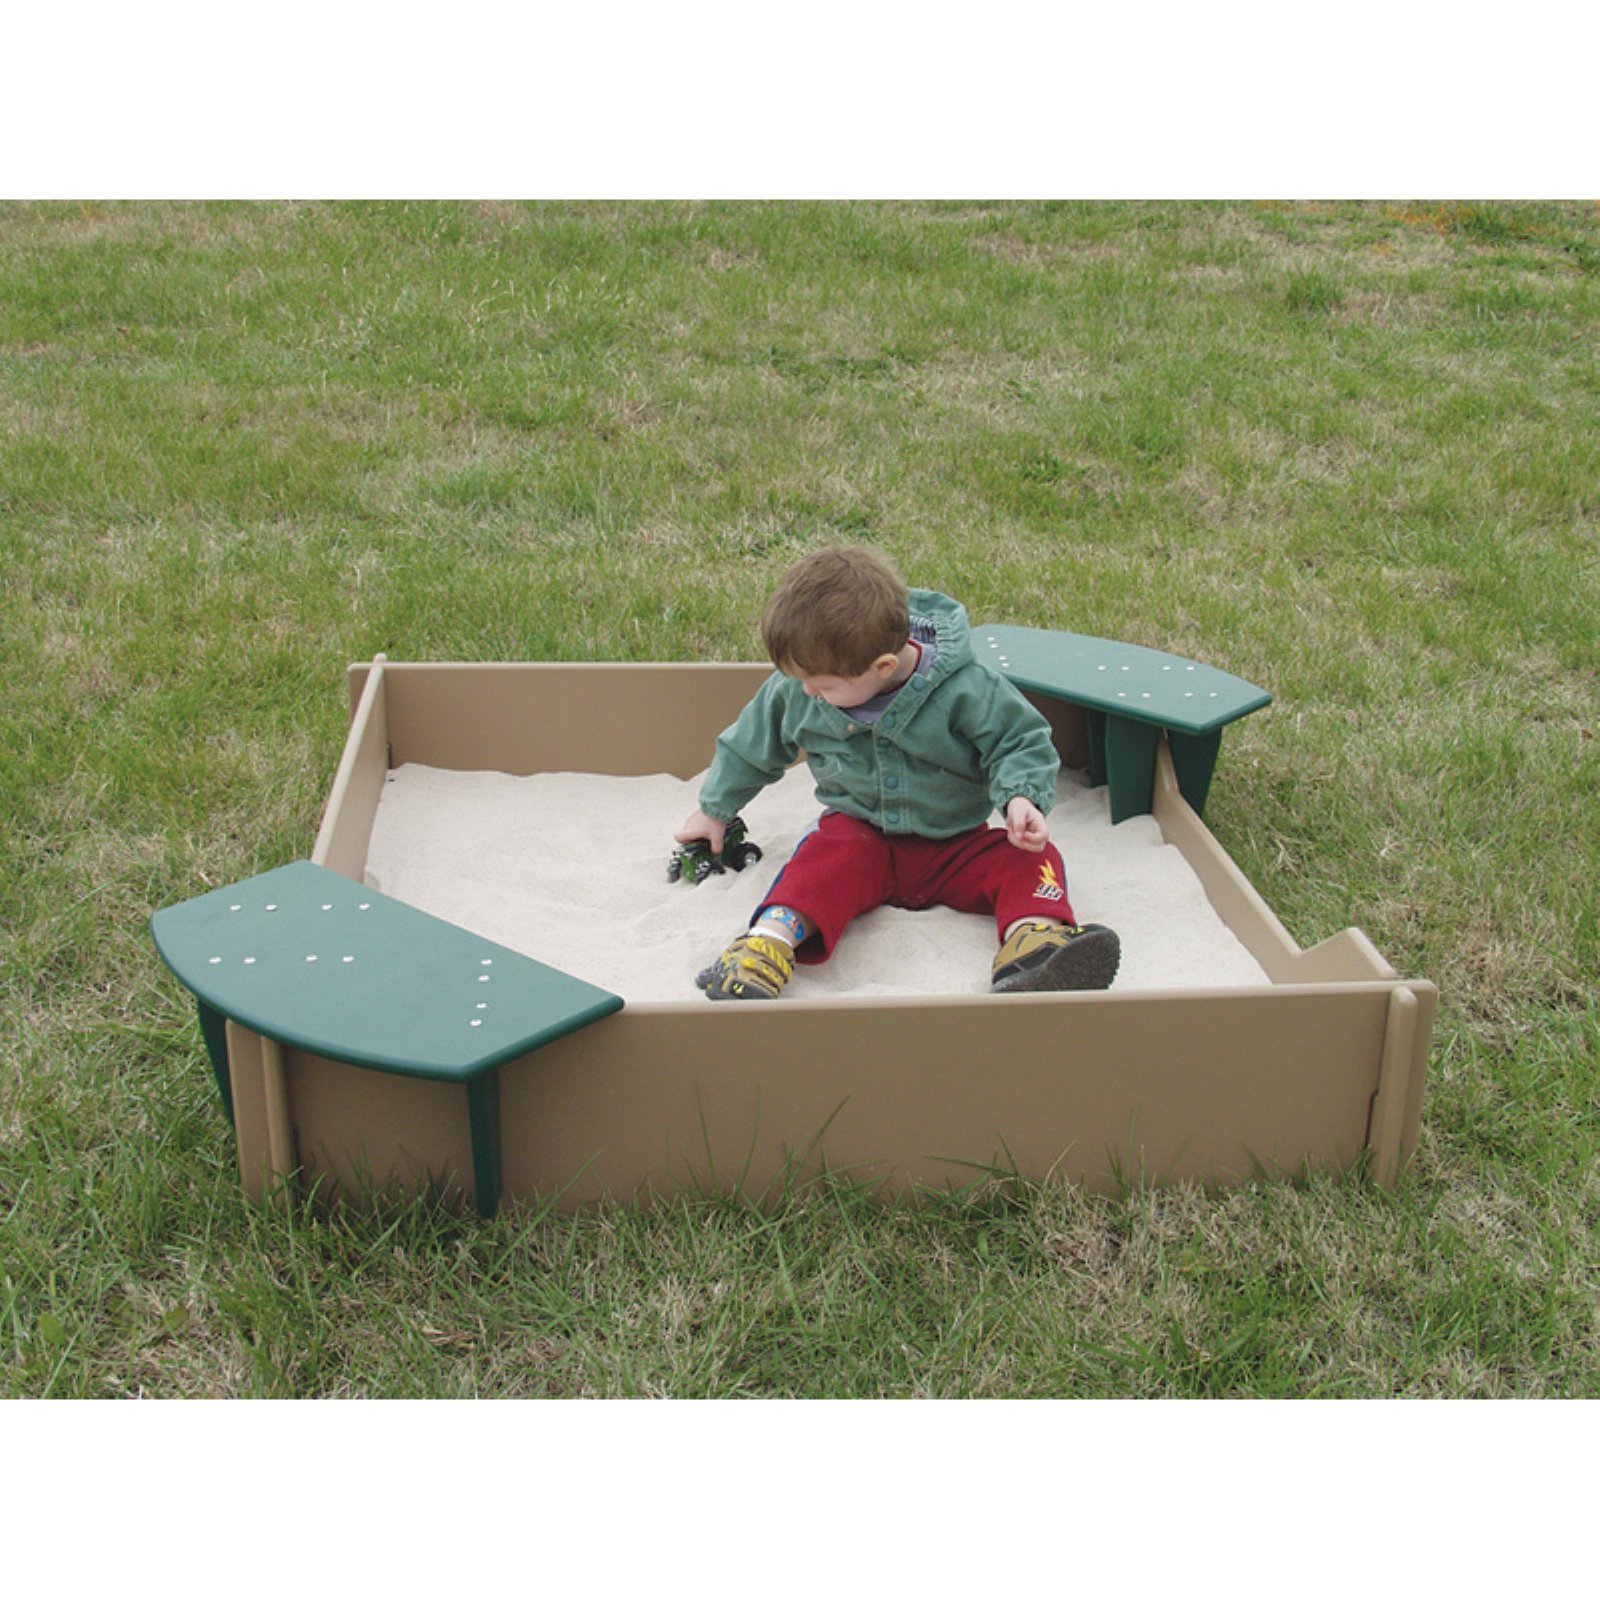 Sportsplay Tot Town Sandbox - Natural